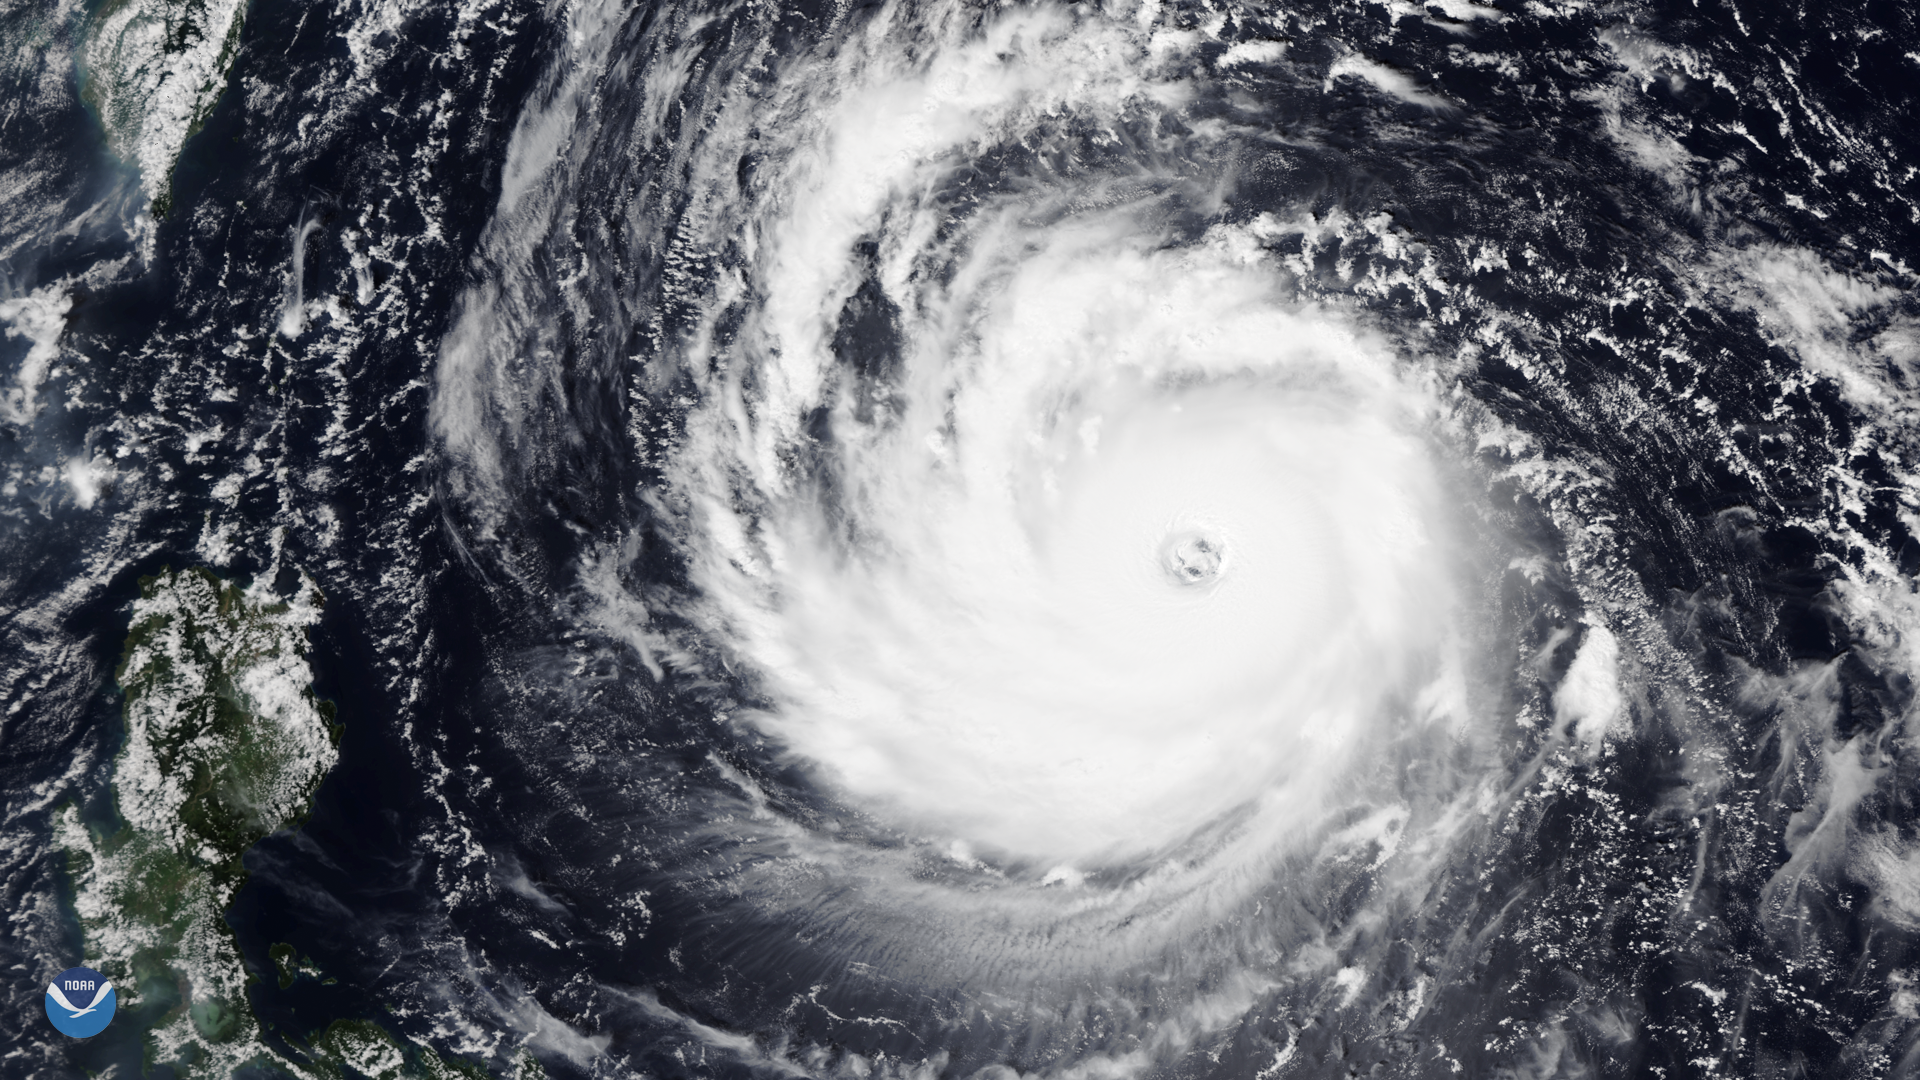 Super Typhoon Trami in the Western Pacific